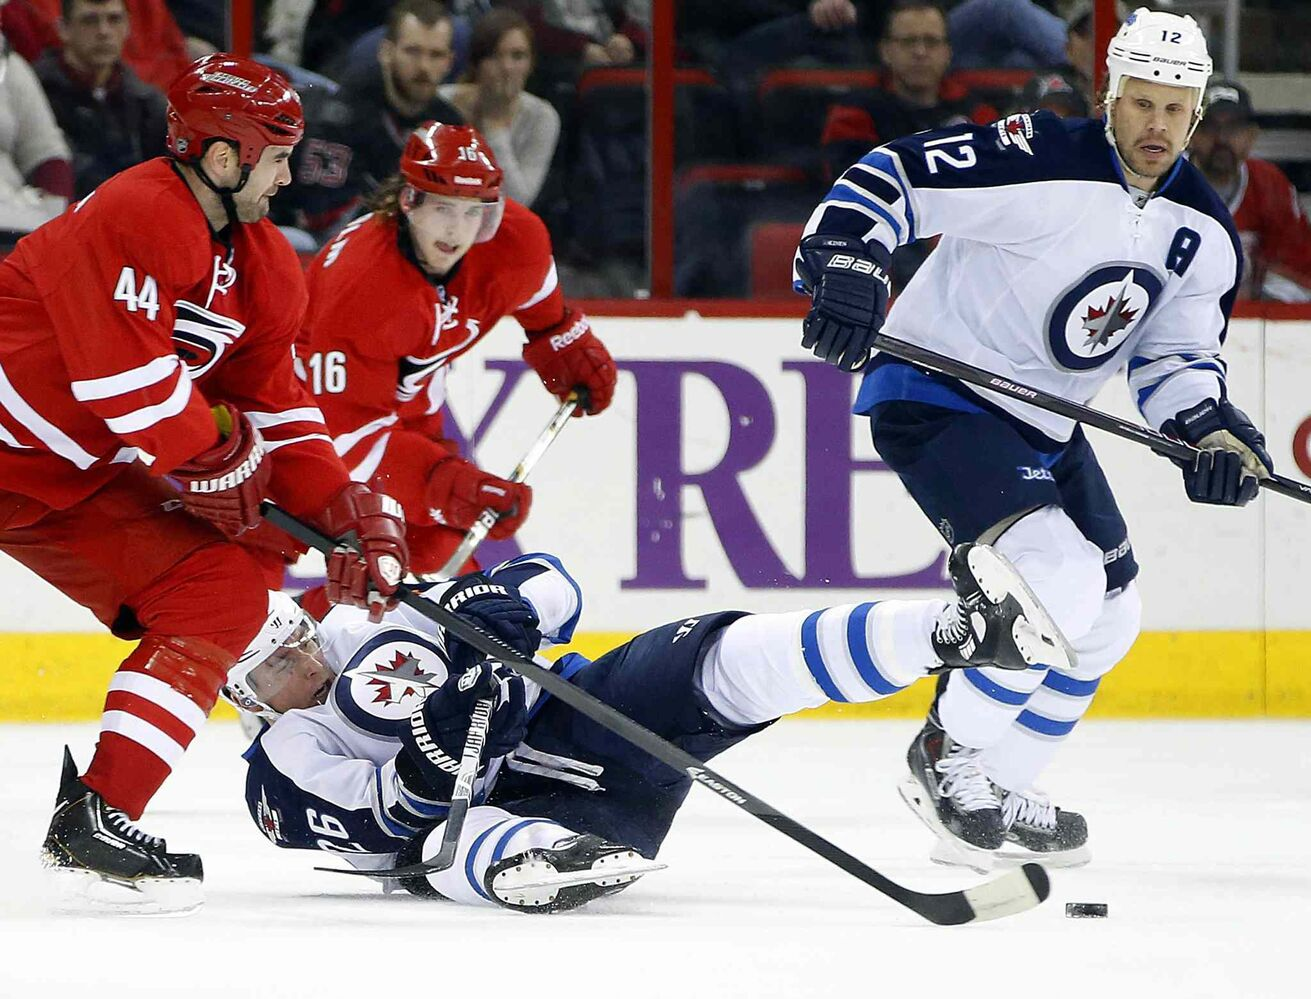 Carolina Hurricanes' Jay Harrison (44) takes Winnipeg Jets' Blake Wheeler (26) off the puck with Olli Jokinen (12) of Finland, during the first period of an NHL hockey game in Raleigh, N.C. on Tuesday. (Karl B DeBlaker / The Associated Press)